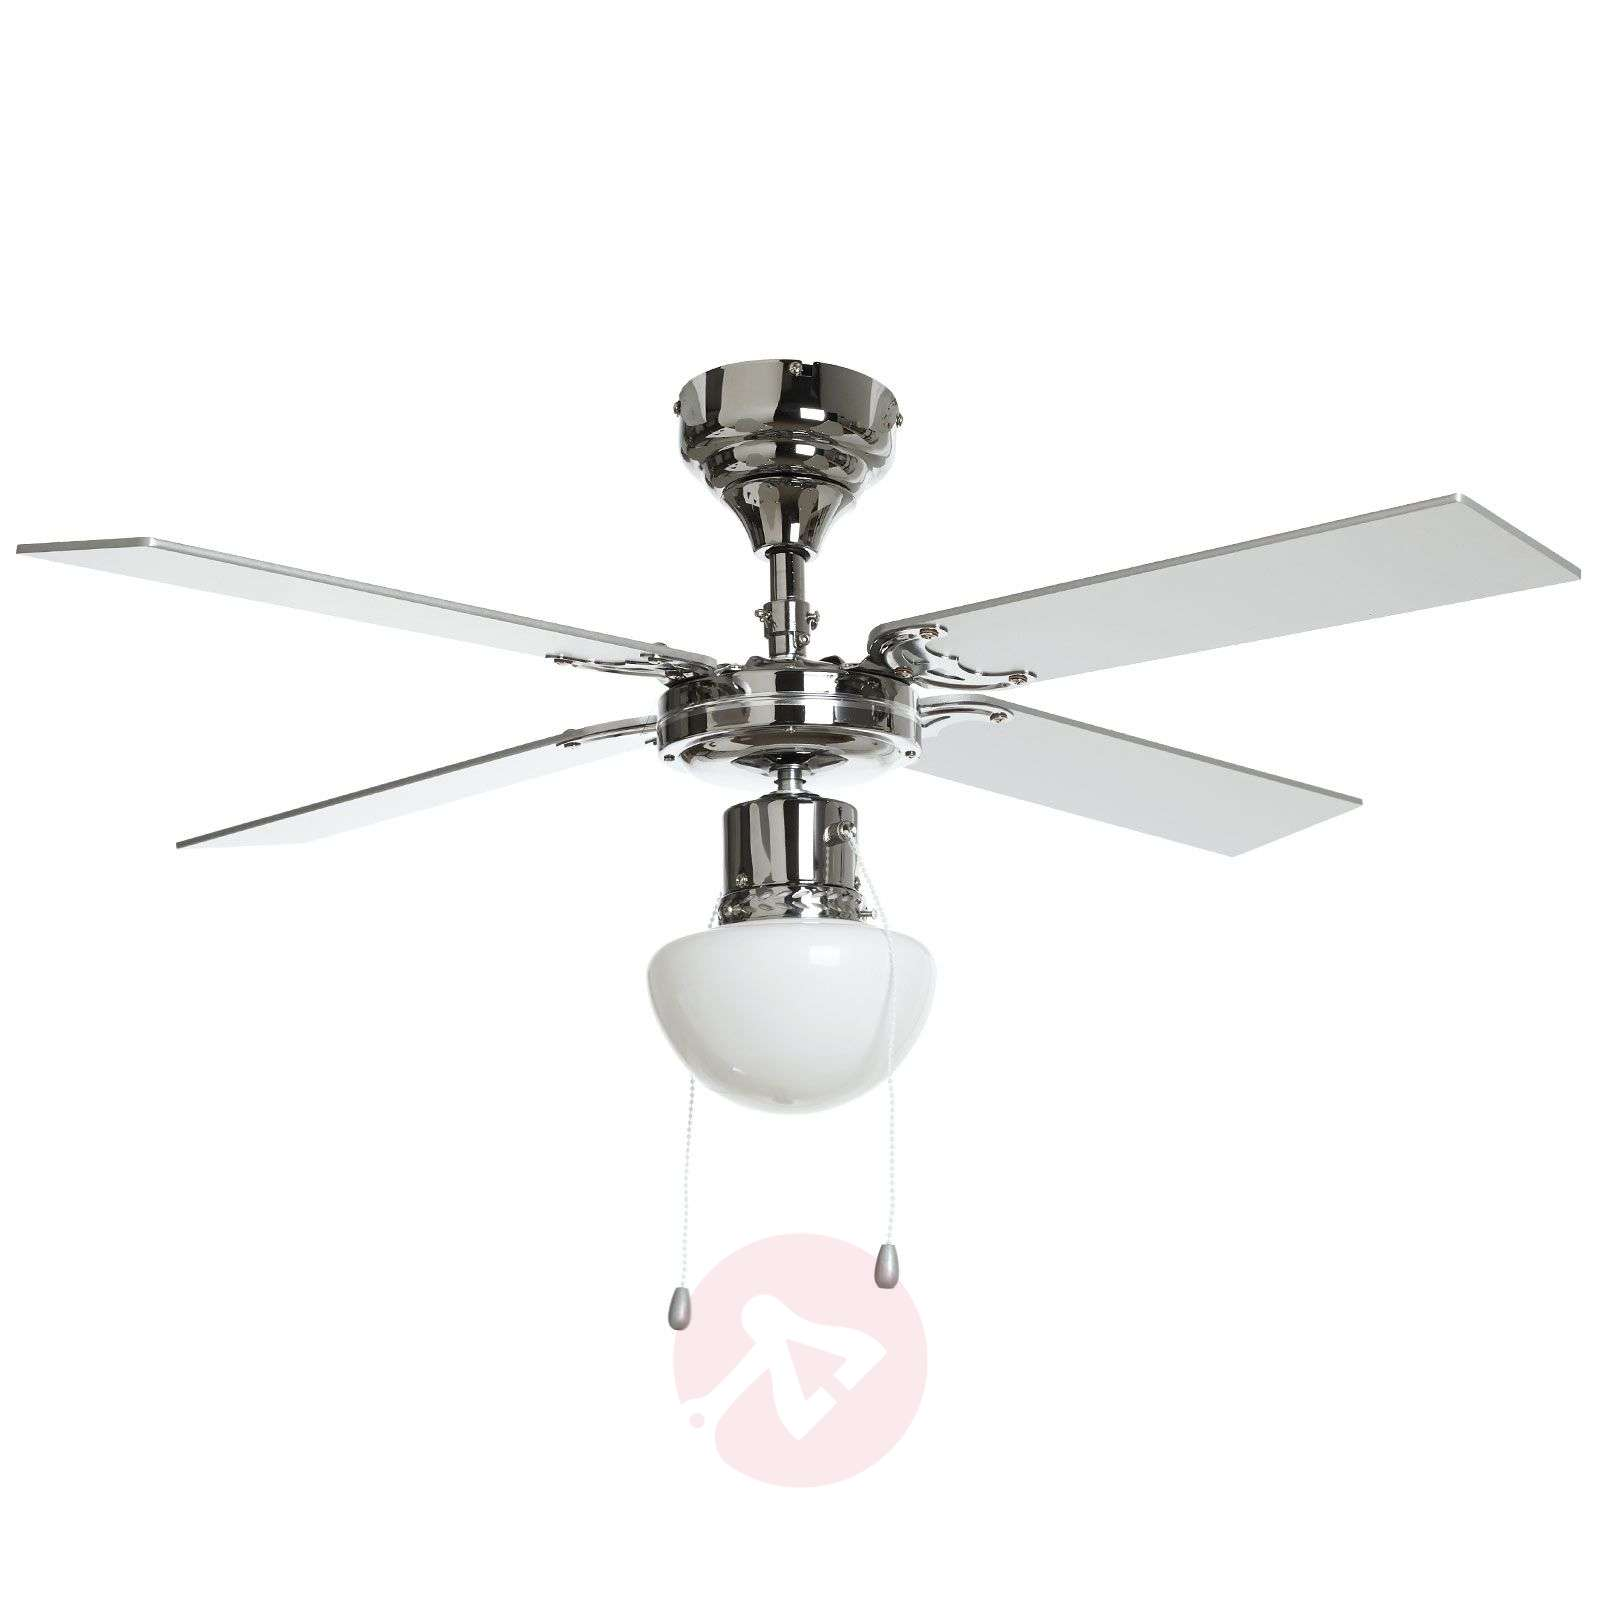 Milana ceiling fan with light, E27-4018101-013